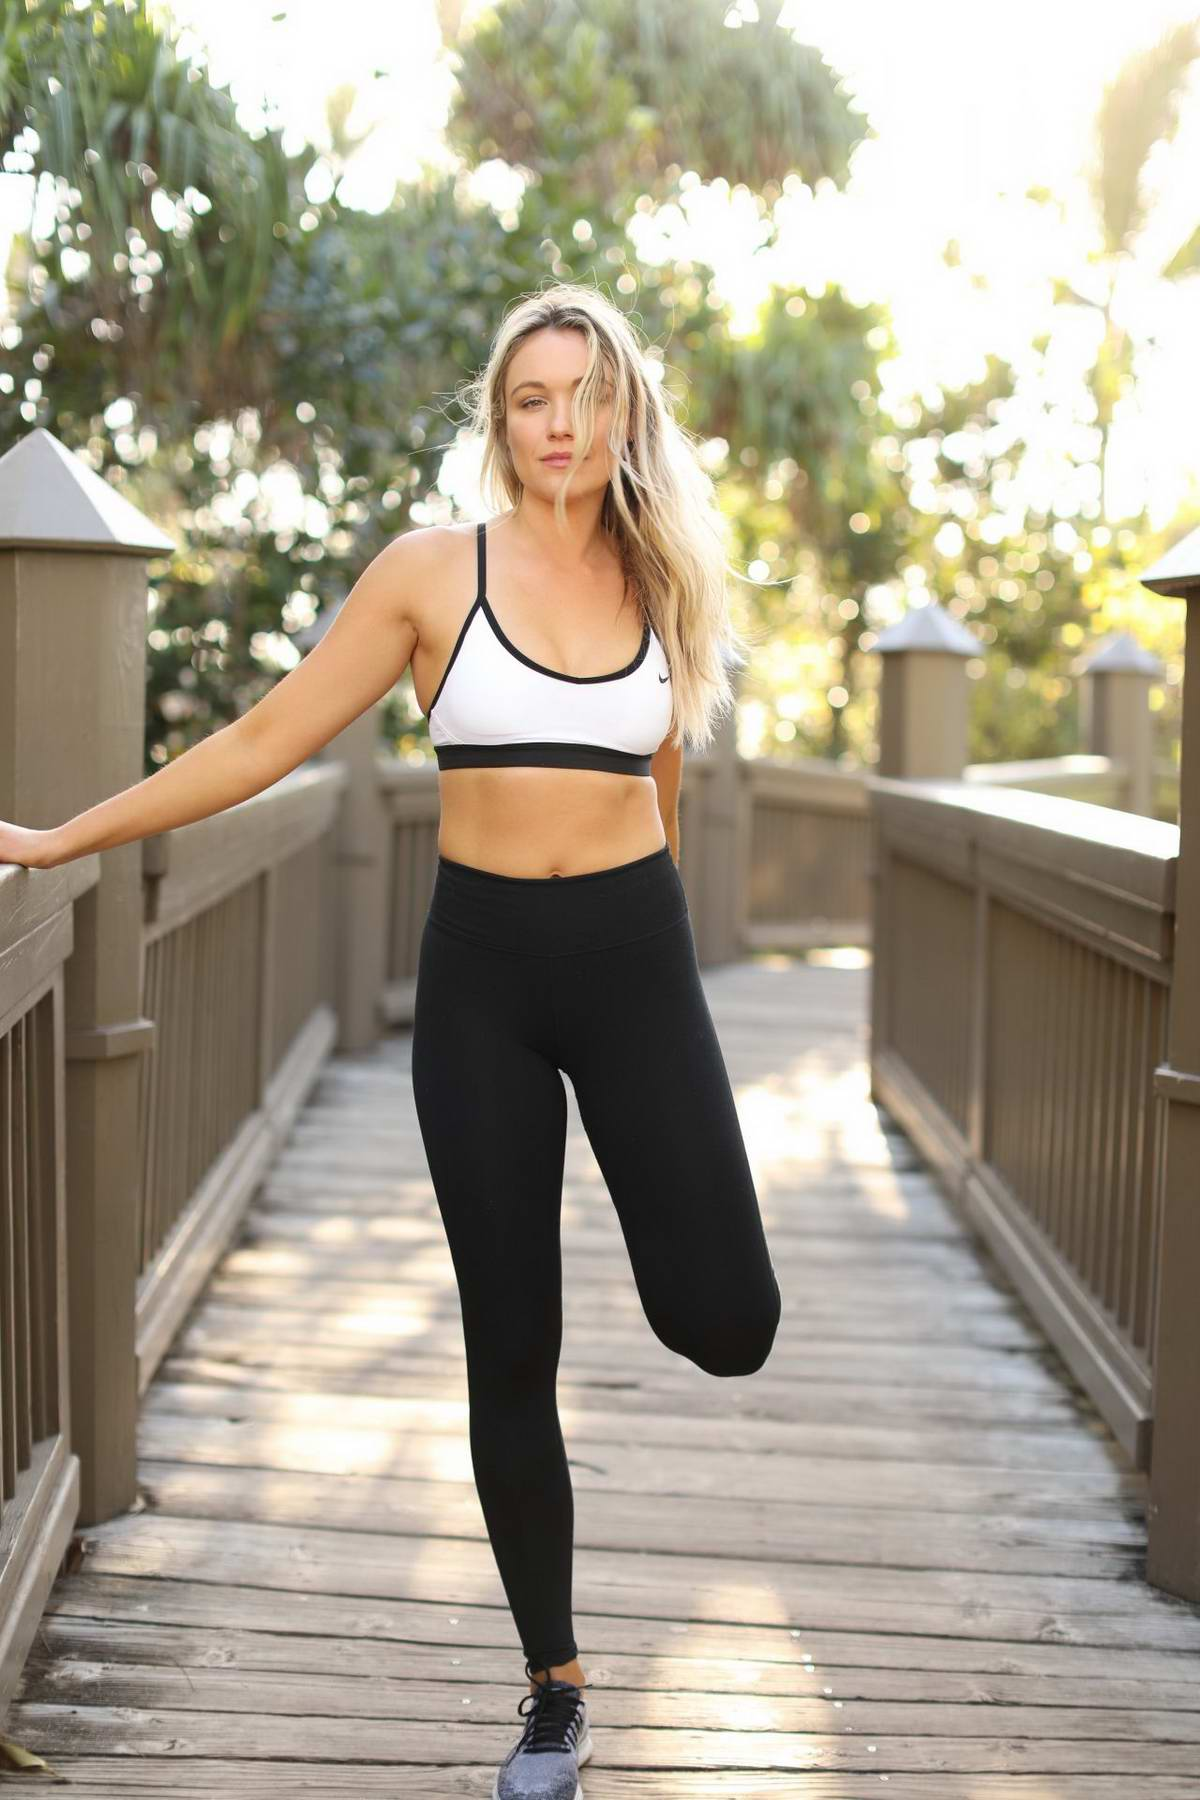 Katrina Bowden in fit and healthy travelling photoshoot for her blog, January 2018